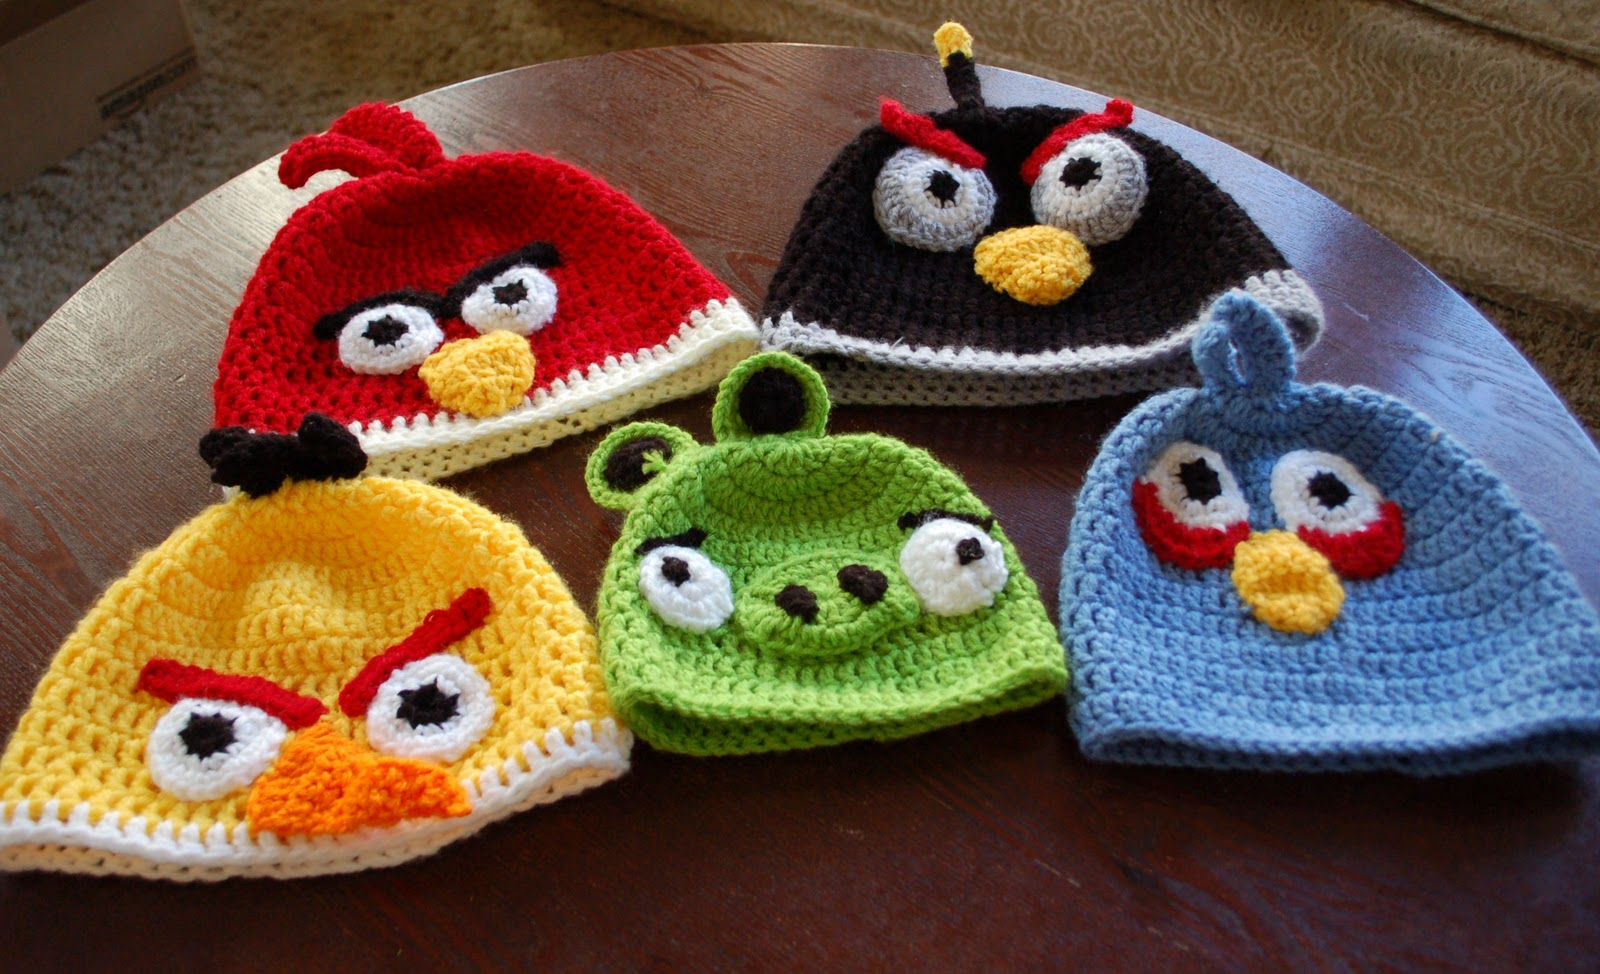 Crochet Hat Pattern Angry Bird : light-in-leaves: Crocheted Angry Birds hats